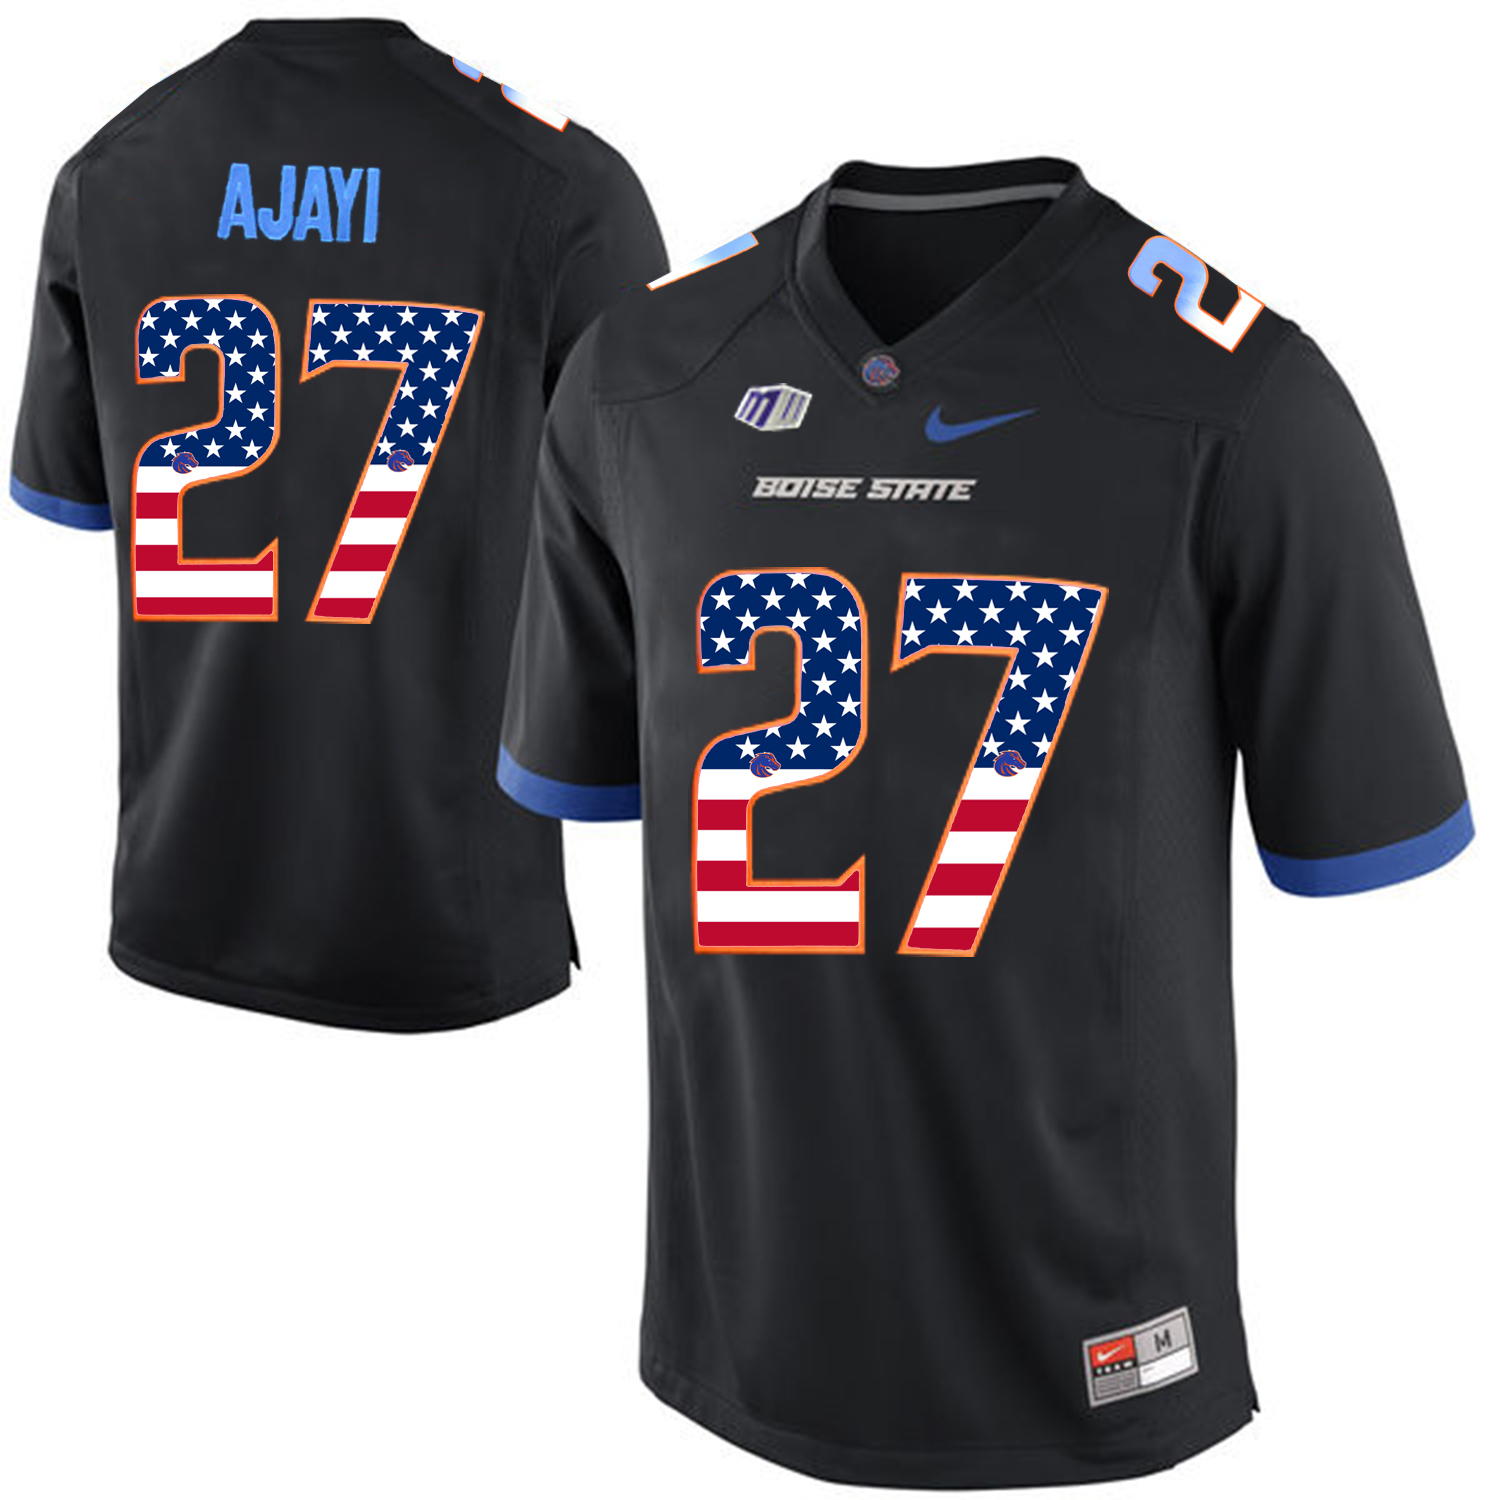 2016 US Flag Fashion Men Boise State Broncos Jay Ajayi 27 College Football Jerseys Black